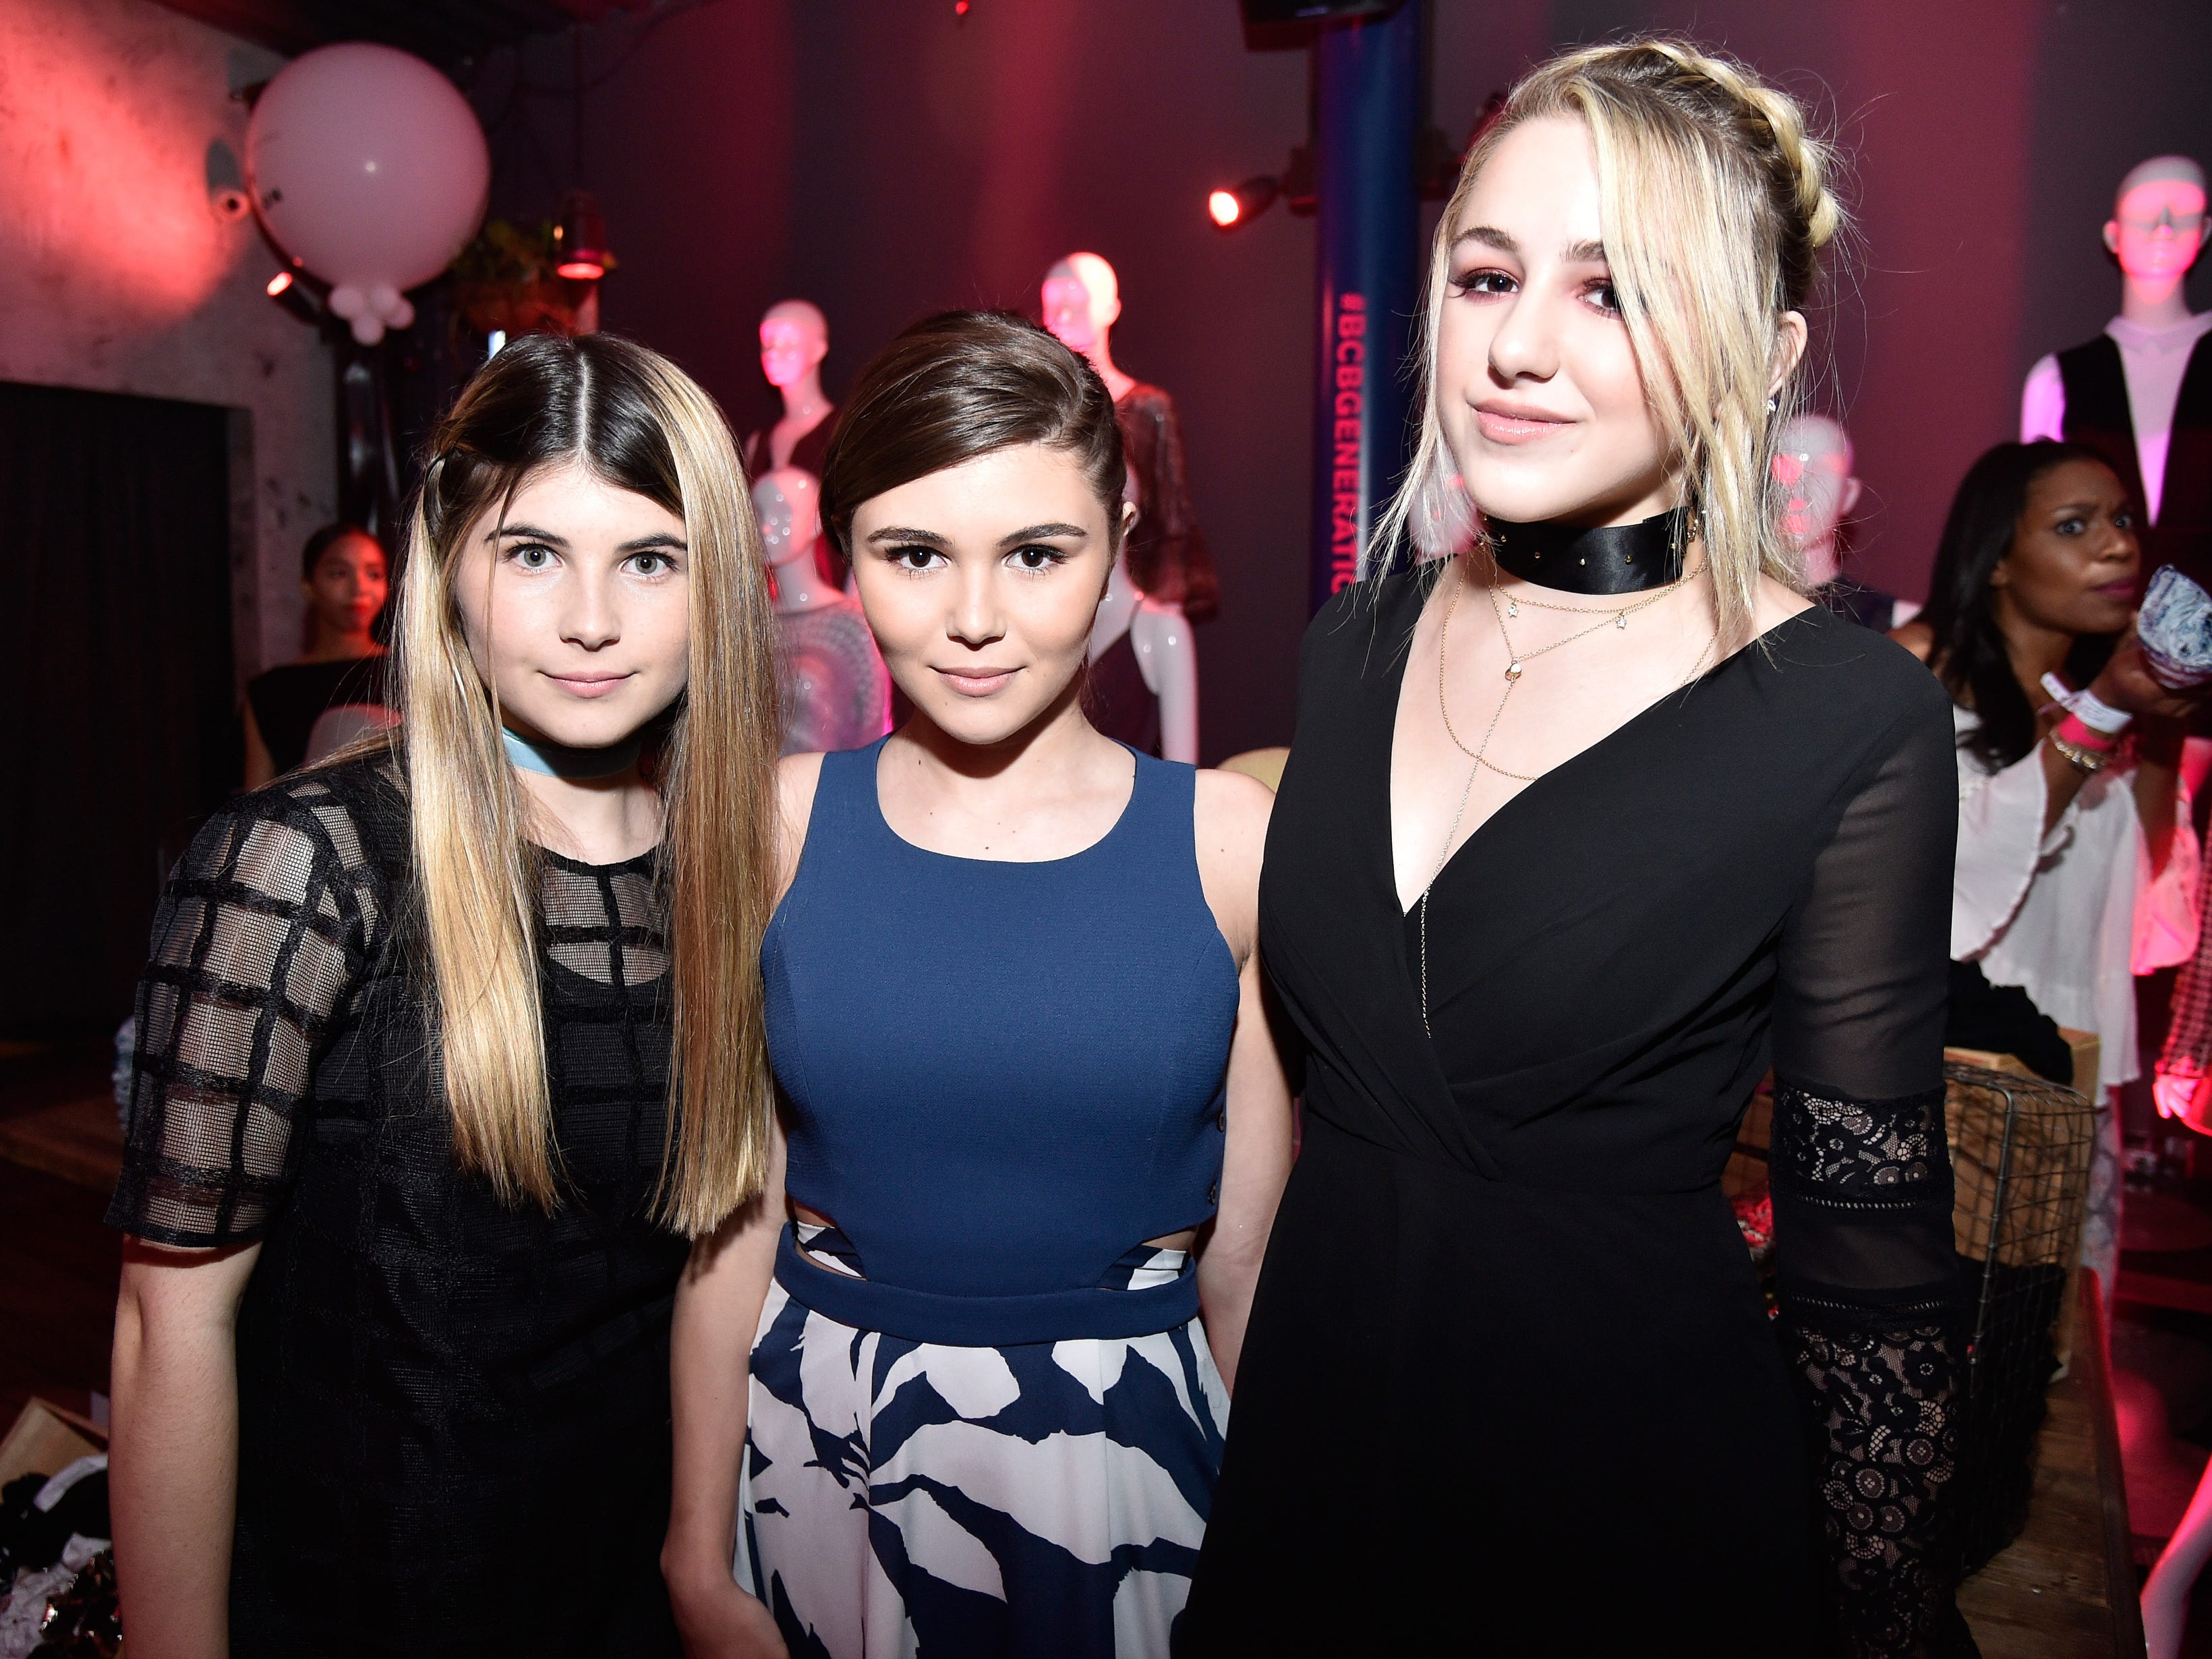 Bella Giannulli, left, Olivia Giannulli and Chloe Lukasiak, right, attend NYLON Young Hollywood Party, presented by BCBGeneration at HYDE Sunset: Kitchen + Cocktails on May 12, 2016, in West Hollywood, Calif.